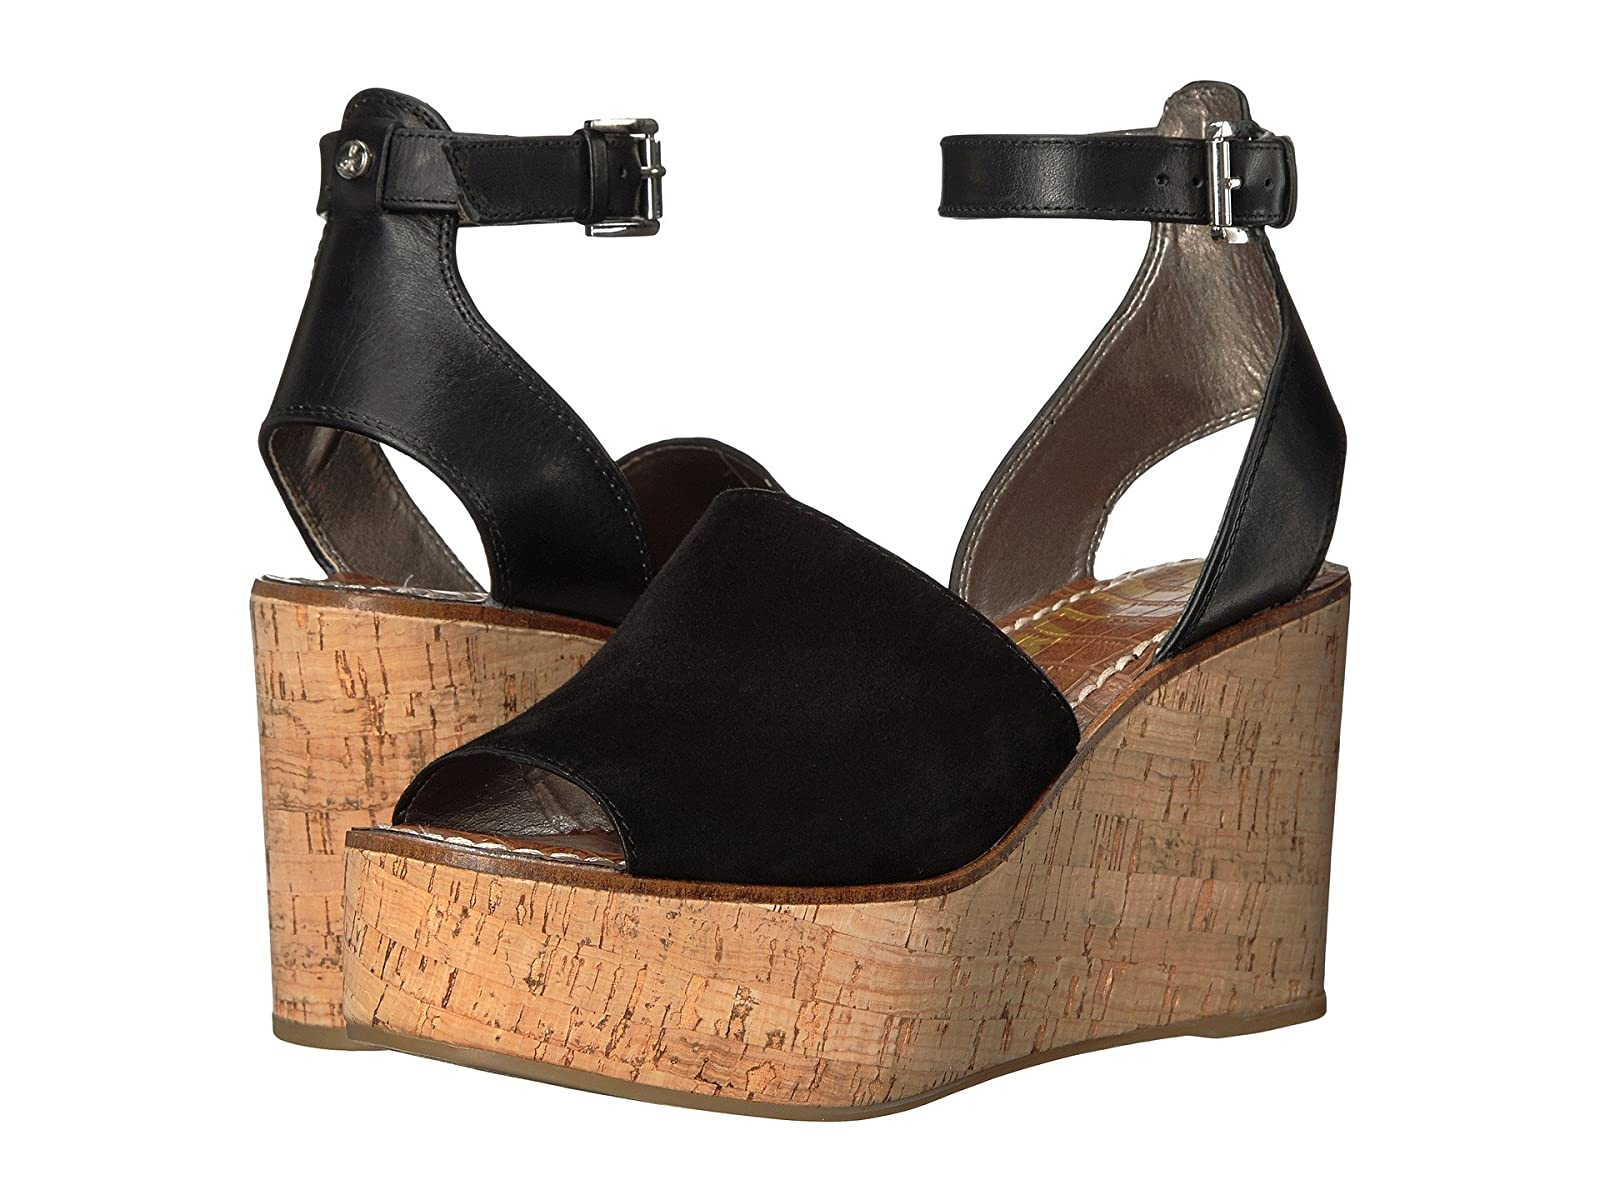 Sam Edelman DevinCheap and distinctive eye-catching shoes